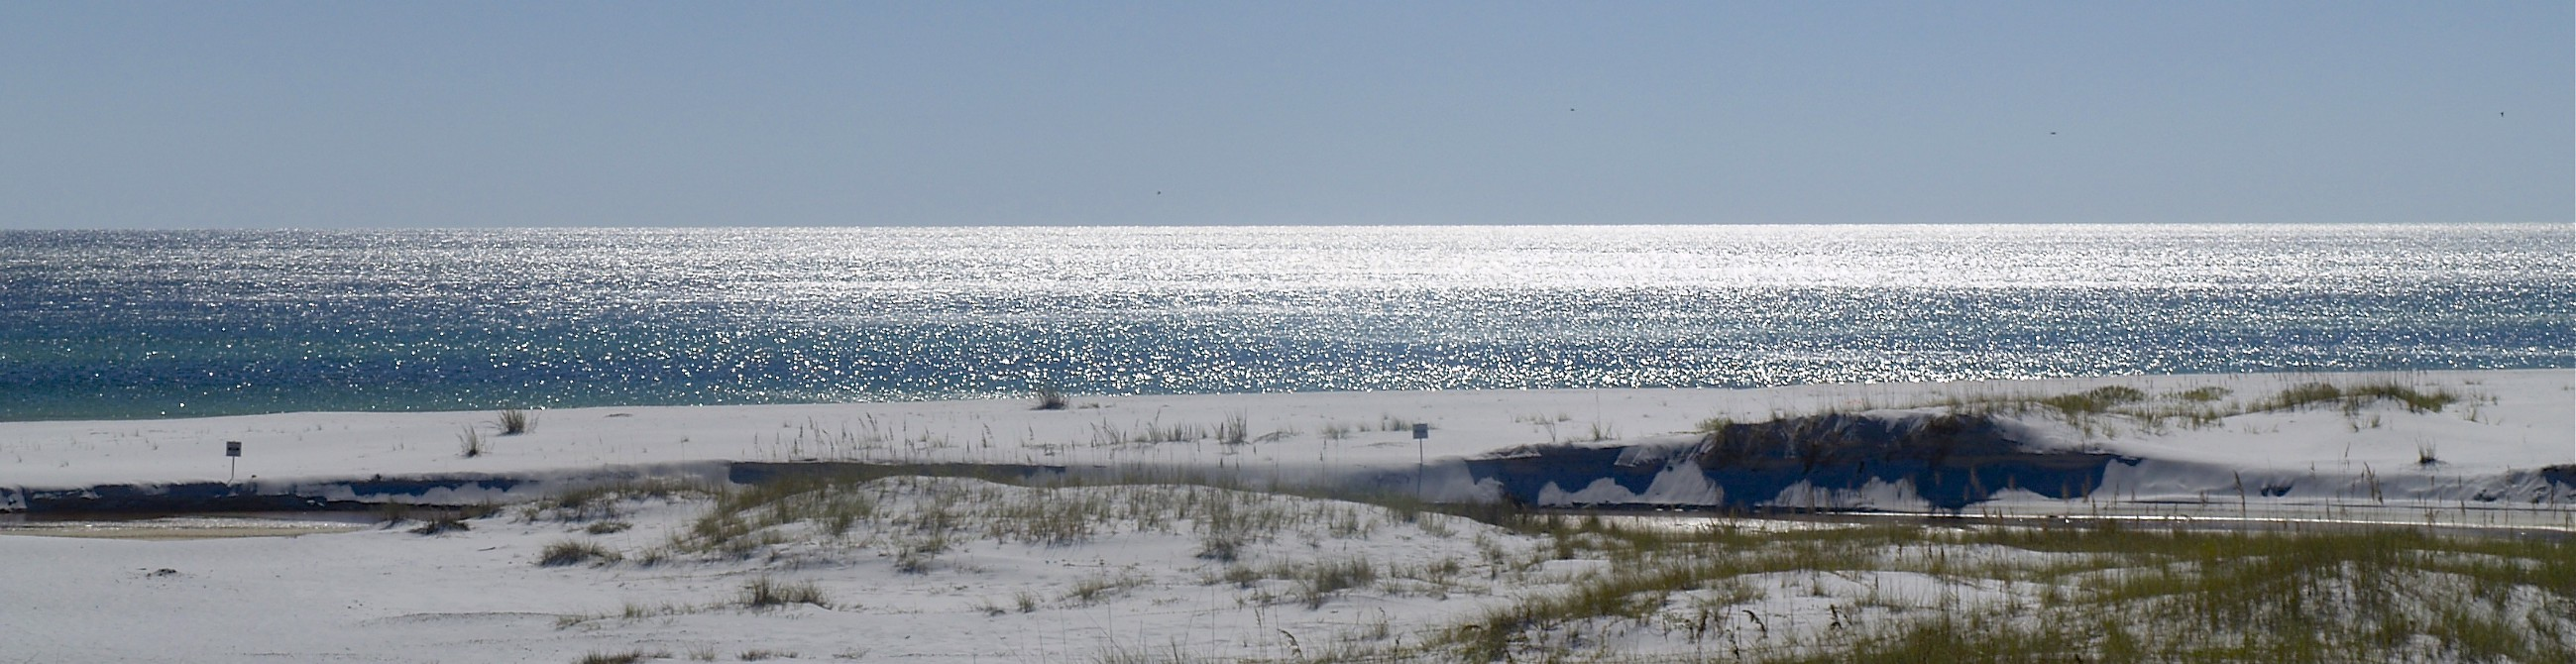 The Florida Gulf Coast in October